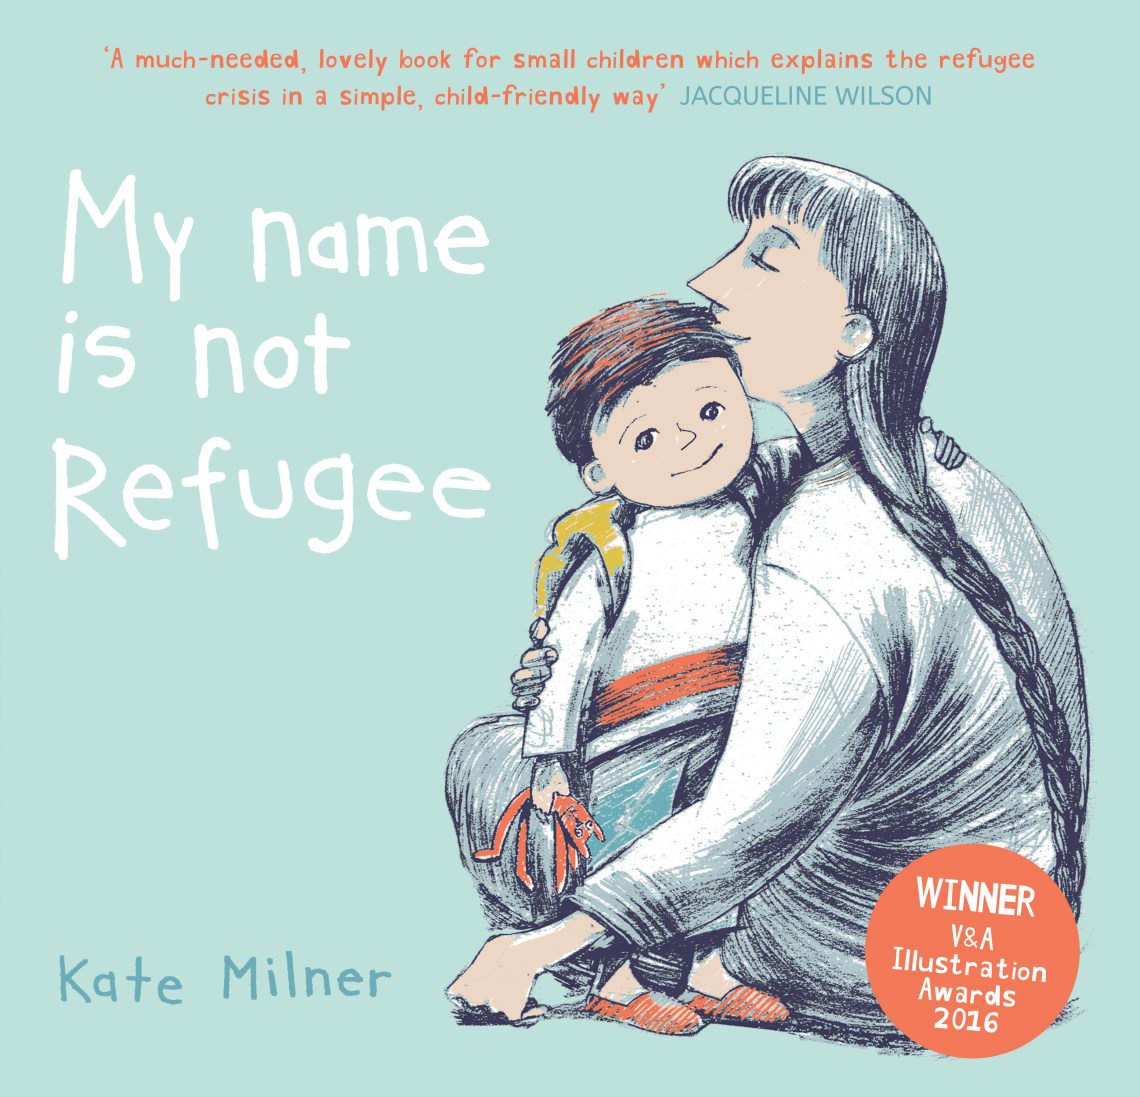 My Name is not Refugee | Books for kids who want to change the world | Sacraparental.com